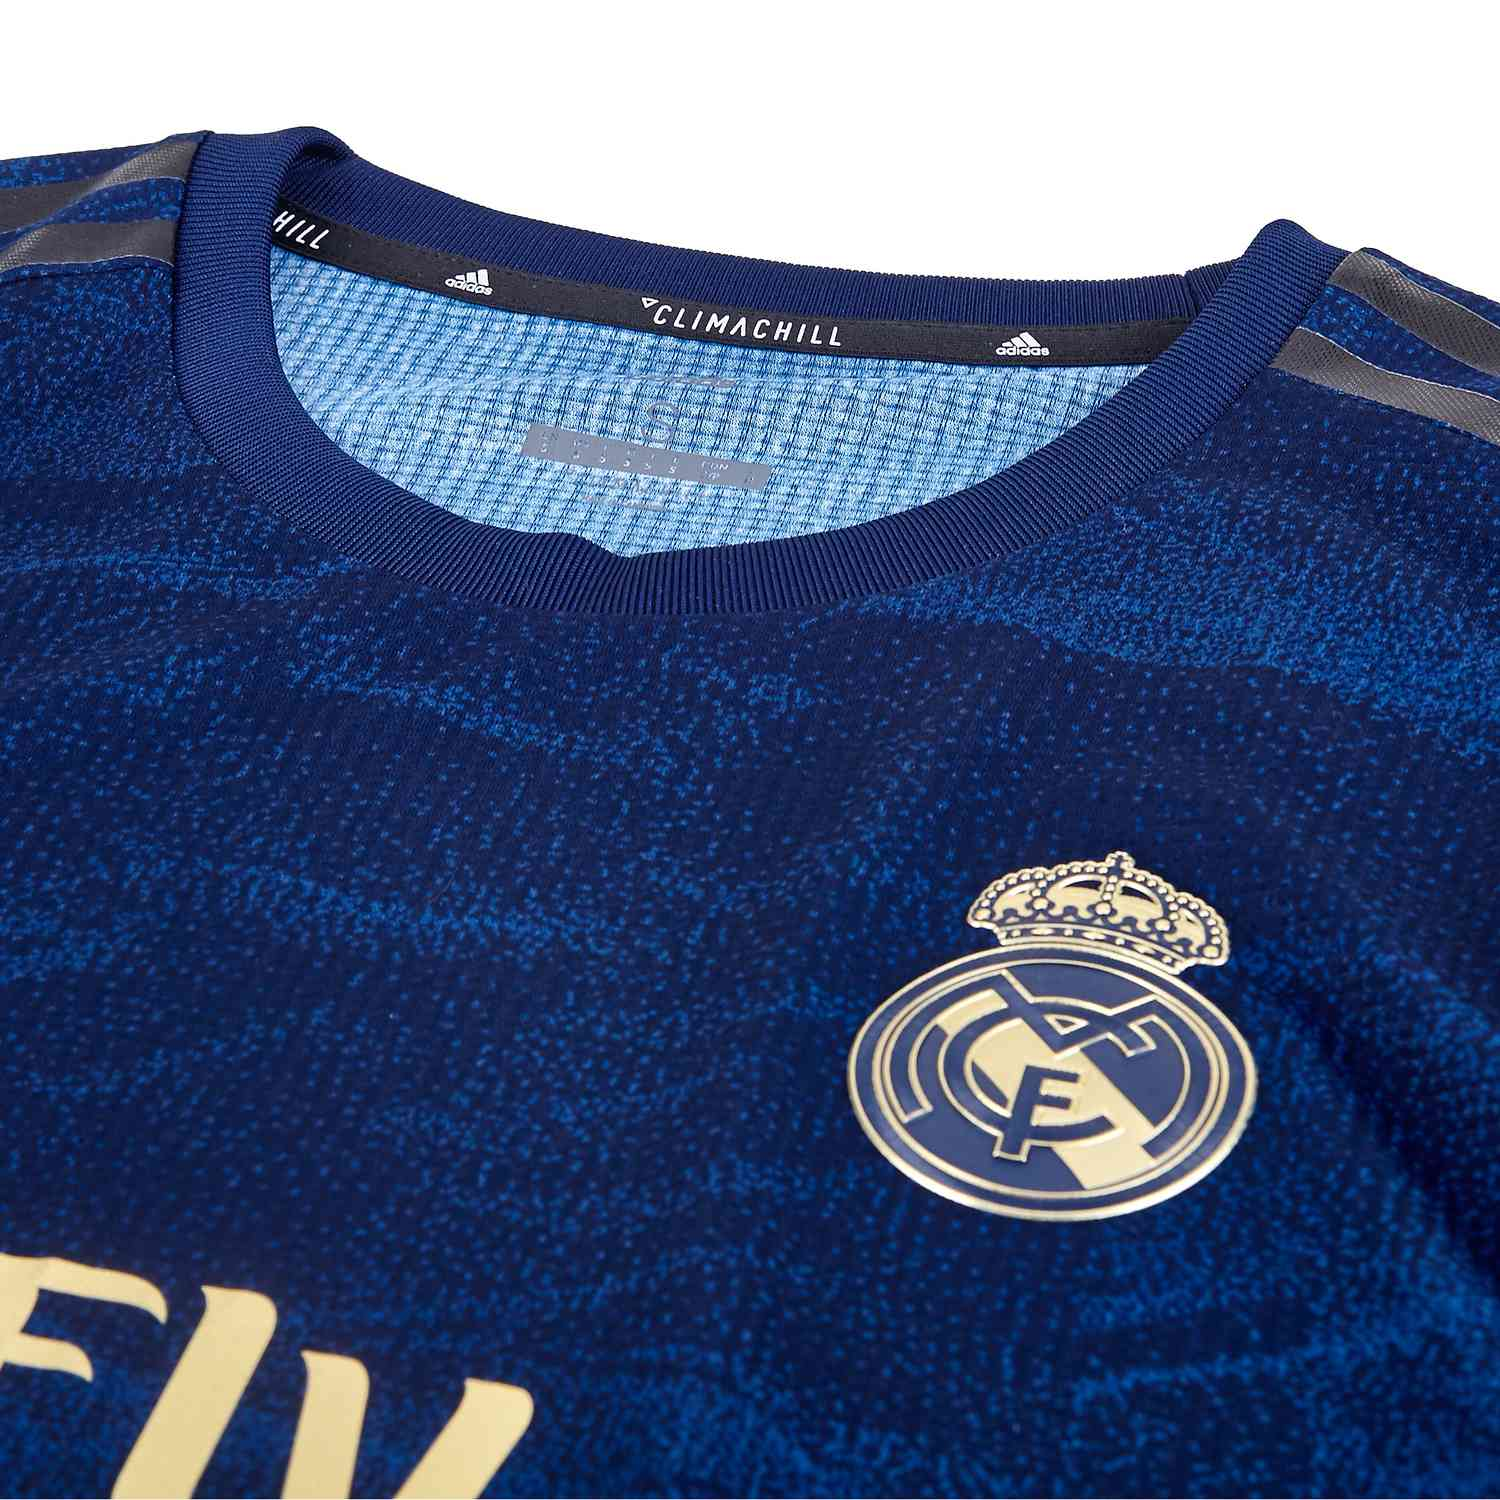 online store 0f4db 74fa5 2019/20 Eden Hazard Real Madrid Away L/S Authentic Jersey - Soccer Master